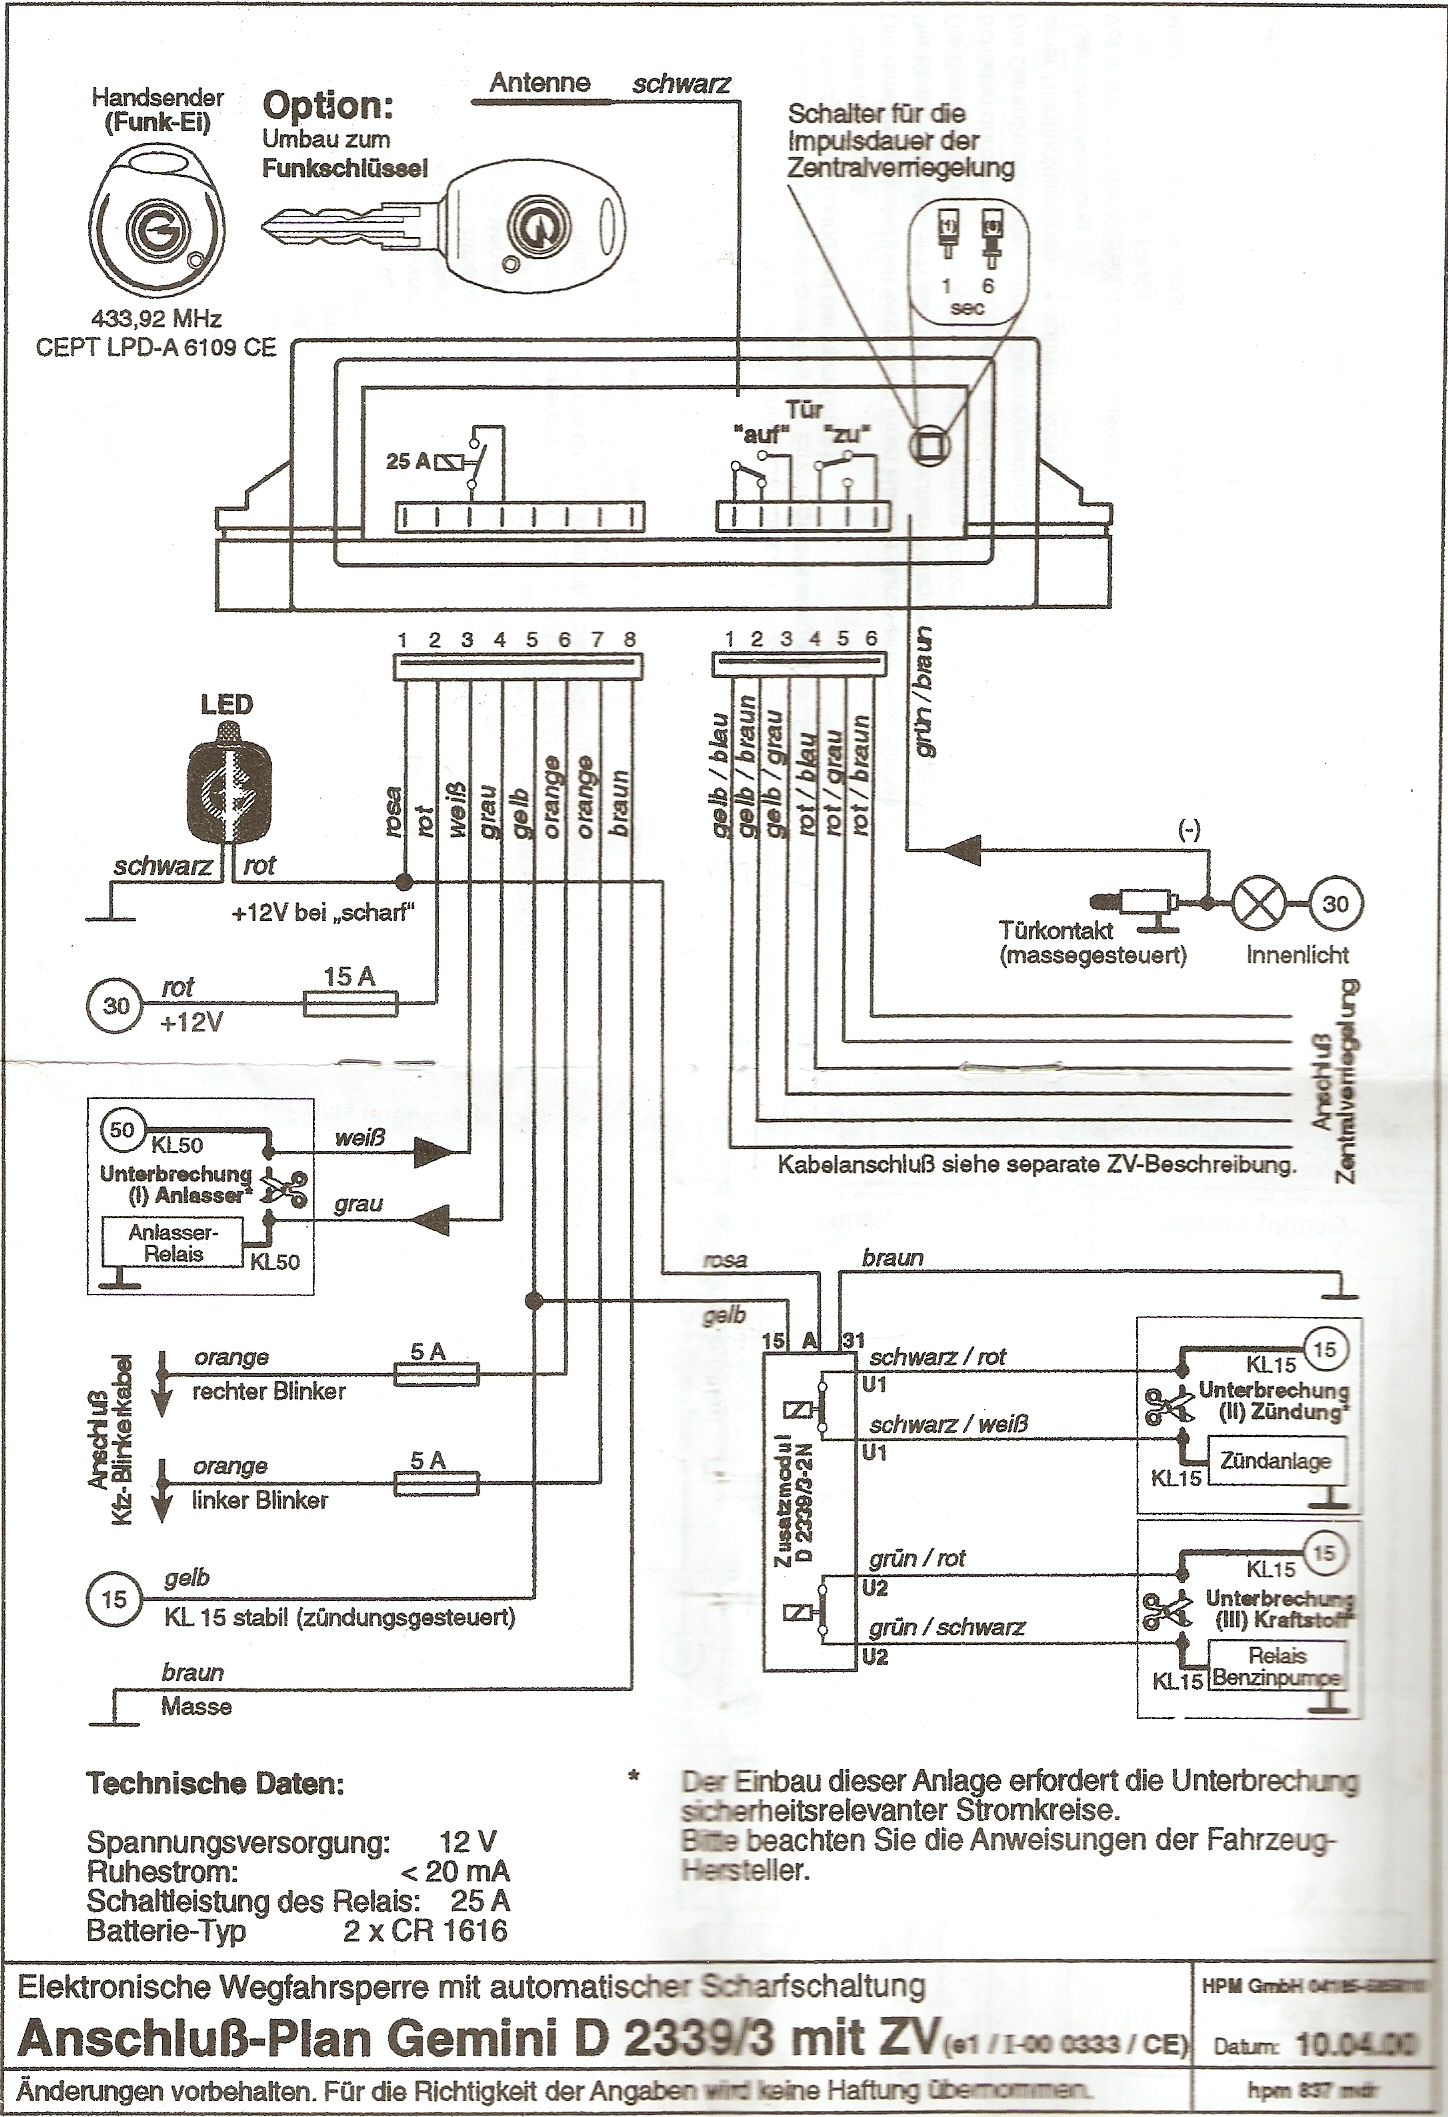 Surprising Pump Control Circuit Wiring Diagram On E30 Alarm Wiring Diagram Wiring Digital Resources Indicompassionincorg